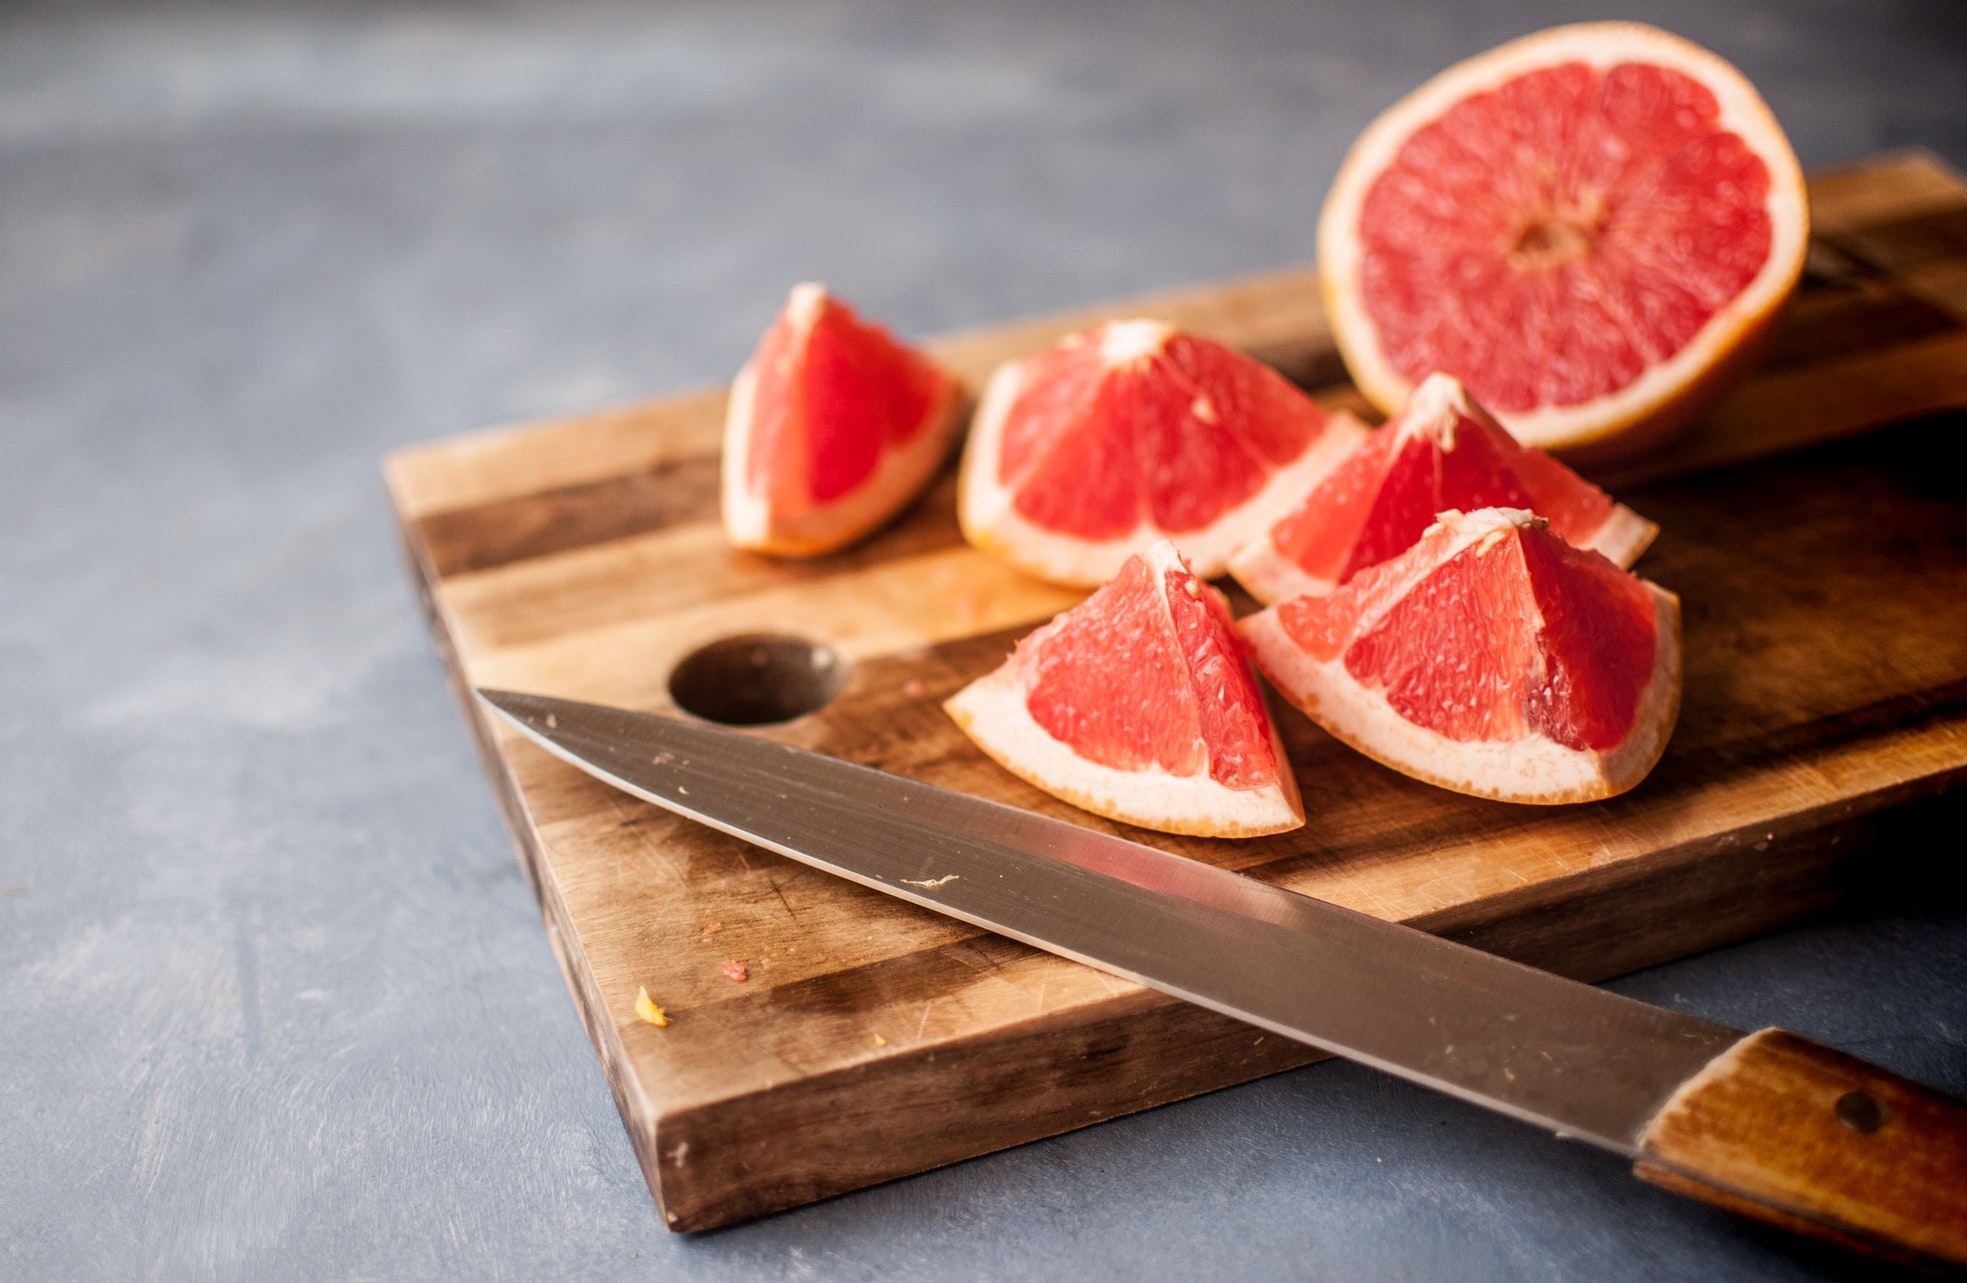 Grapefruit scent can make middle-aged women appear an average of 6 years younger to men.